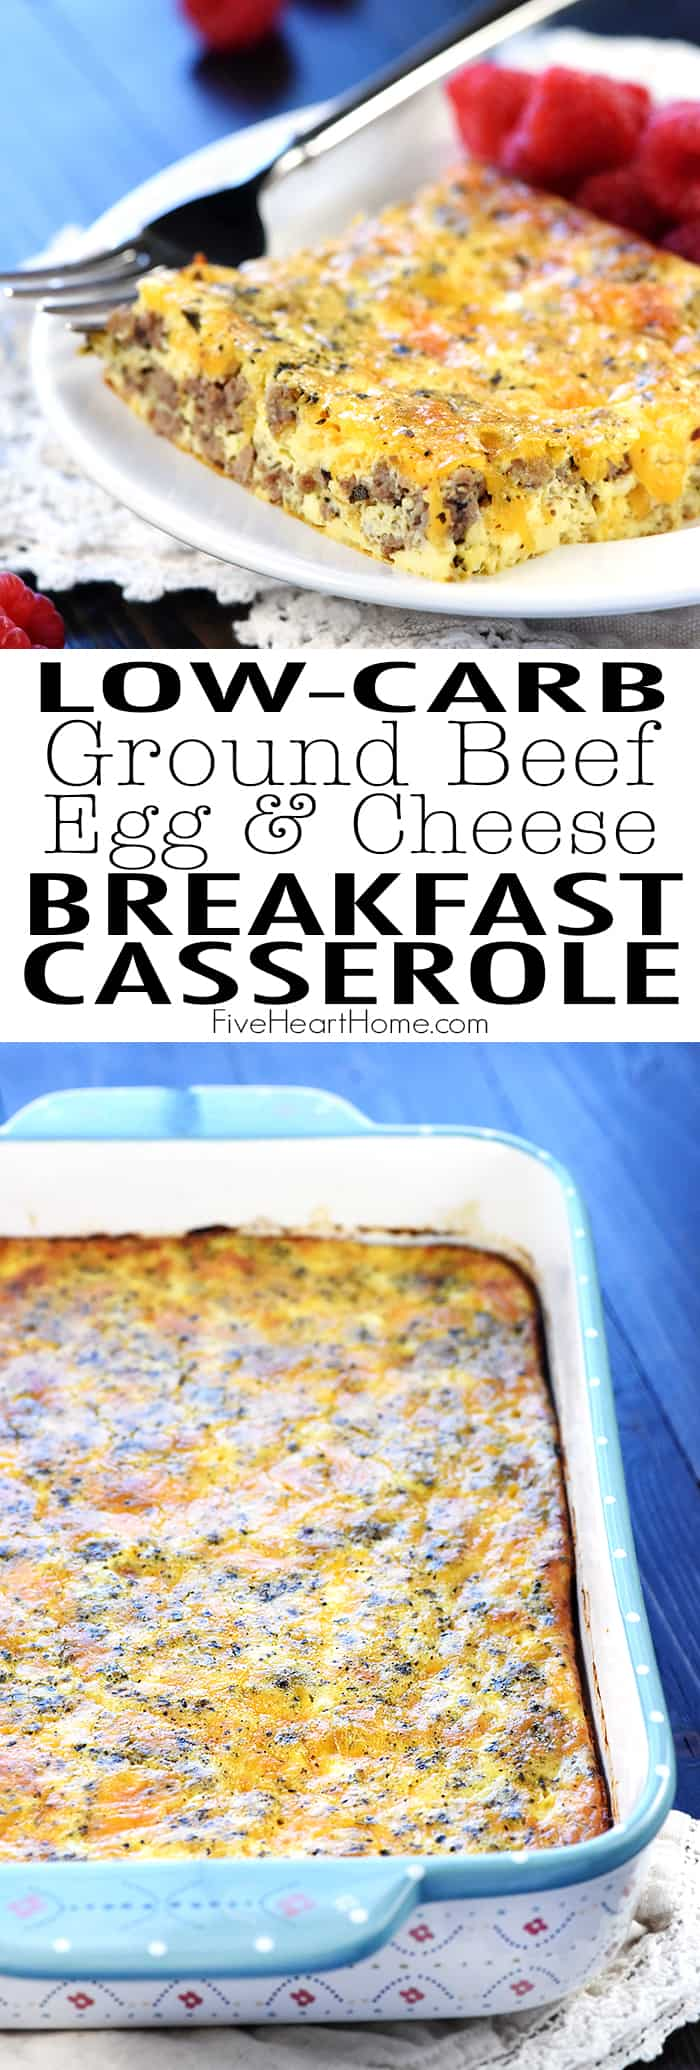 Ground Beef, Egg, & Cheese Breakfast Casserole Collage with Text Overlay